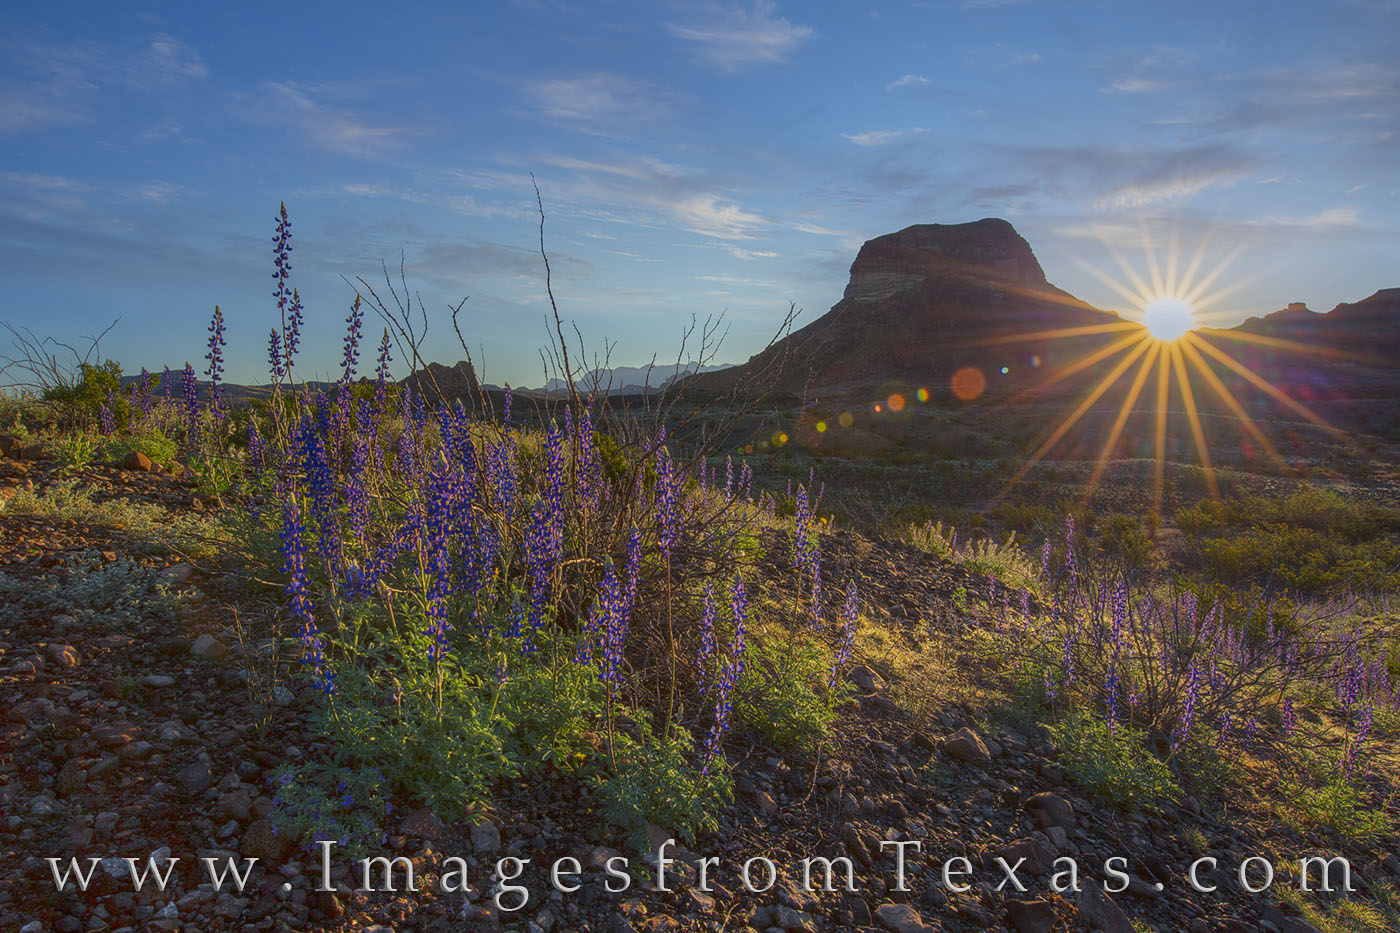 bluebonnets, big bend, big bend bluebonnets, sunrise, big bend national park, landscapes, texas landscapes, texas sunrise, chisos, chisos mountains, desert, chihuahuan desert, remote, photo